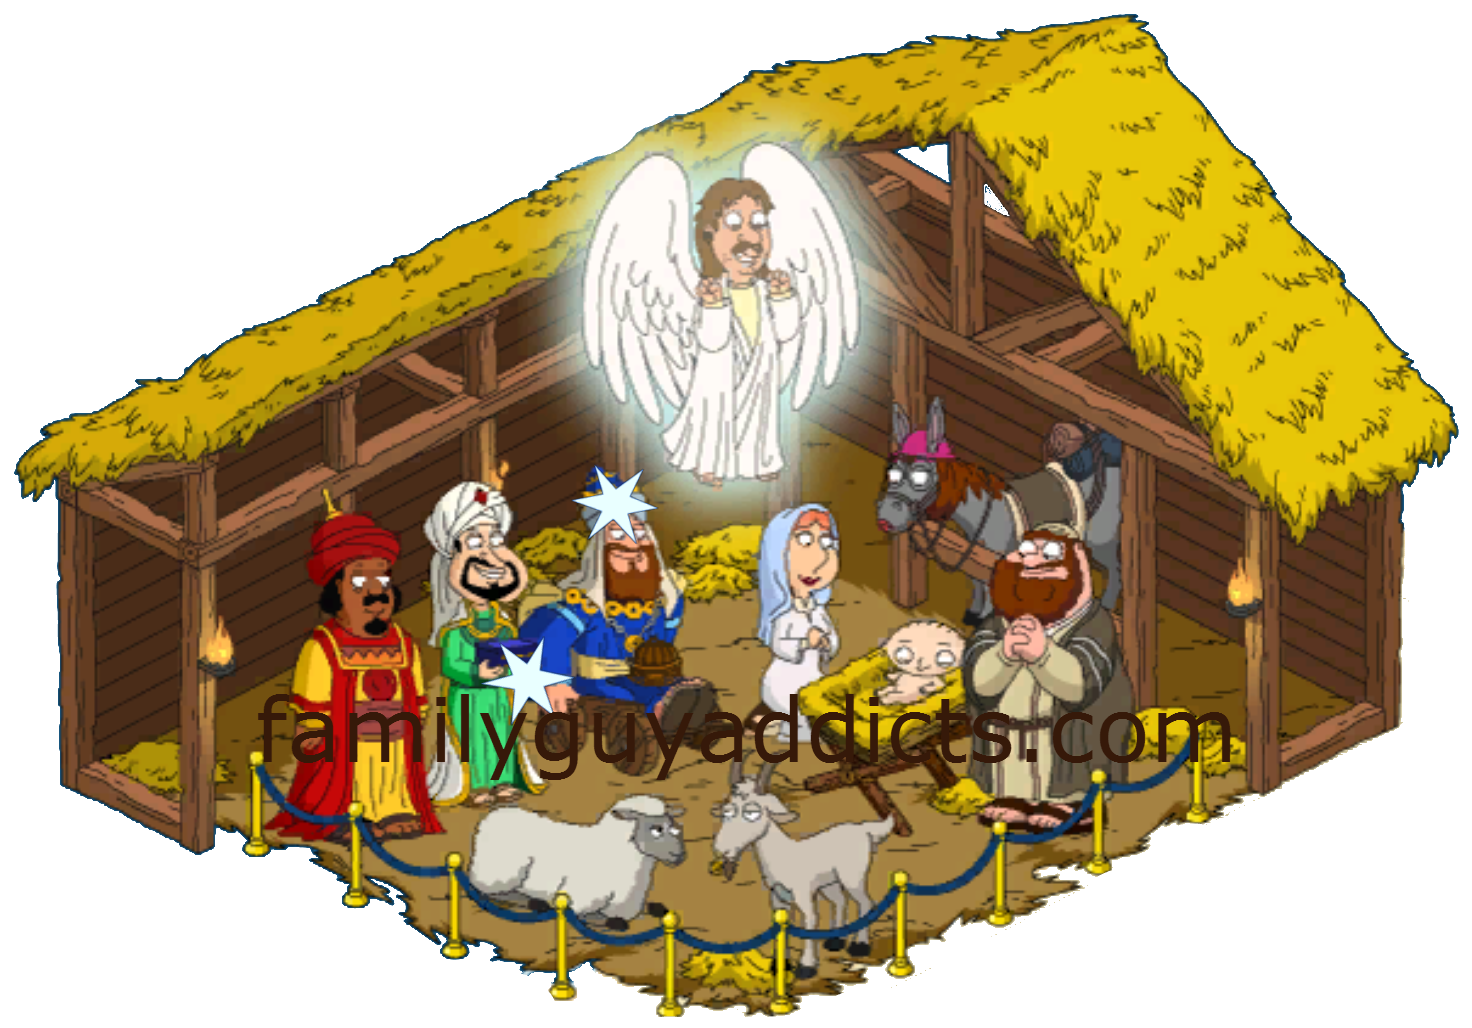 Where The Hell…? Manger/ Nativity Scene | Family Guy Addicts